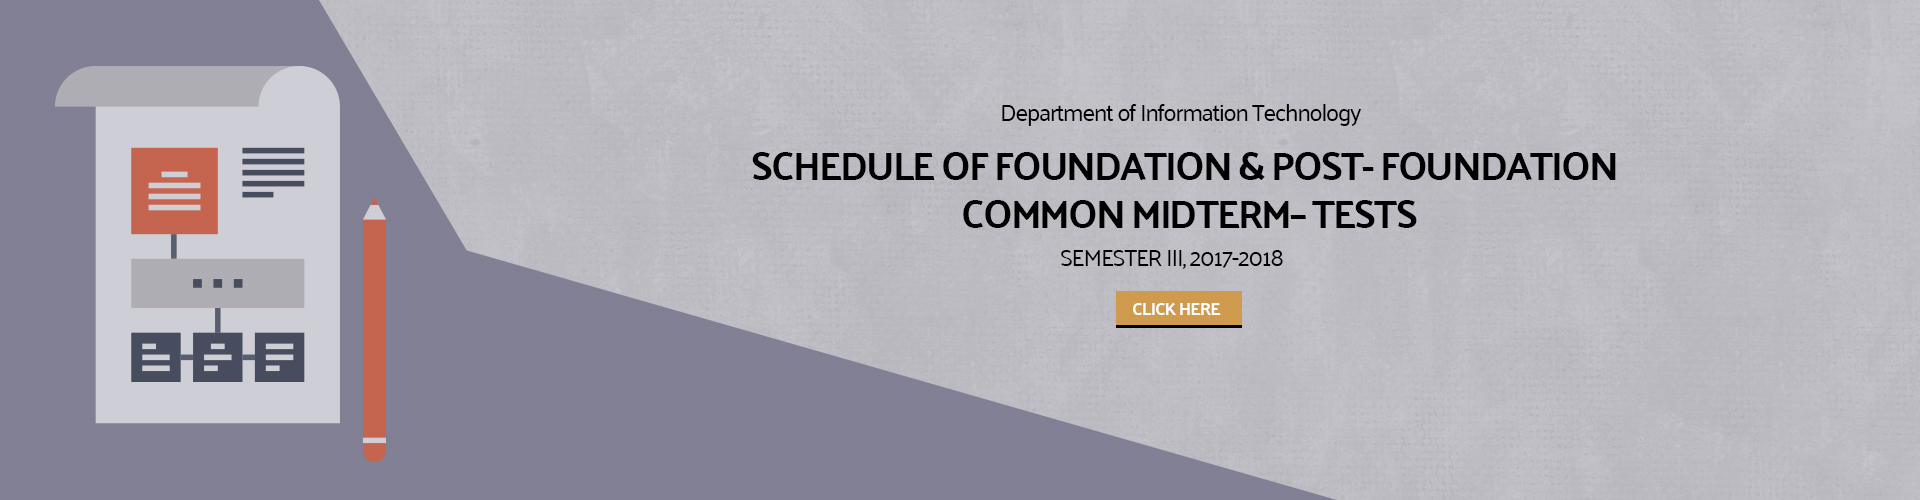 IT Department - Schedule of Foundation & Post - Foundation Common Midterm Tests Semester III AY(2017-2018)